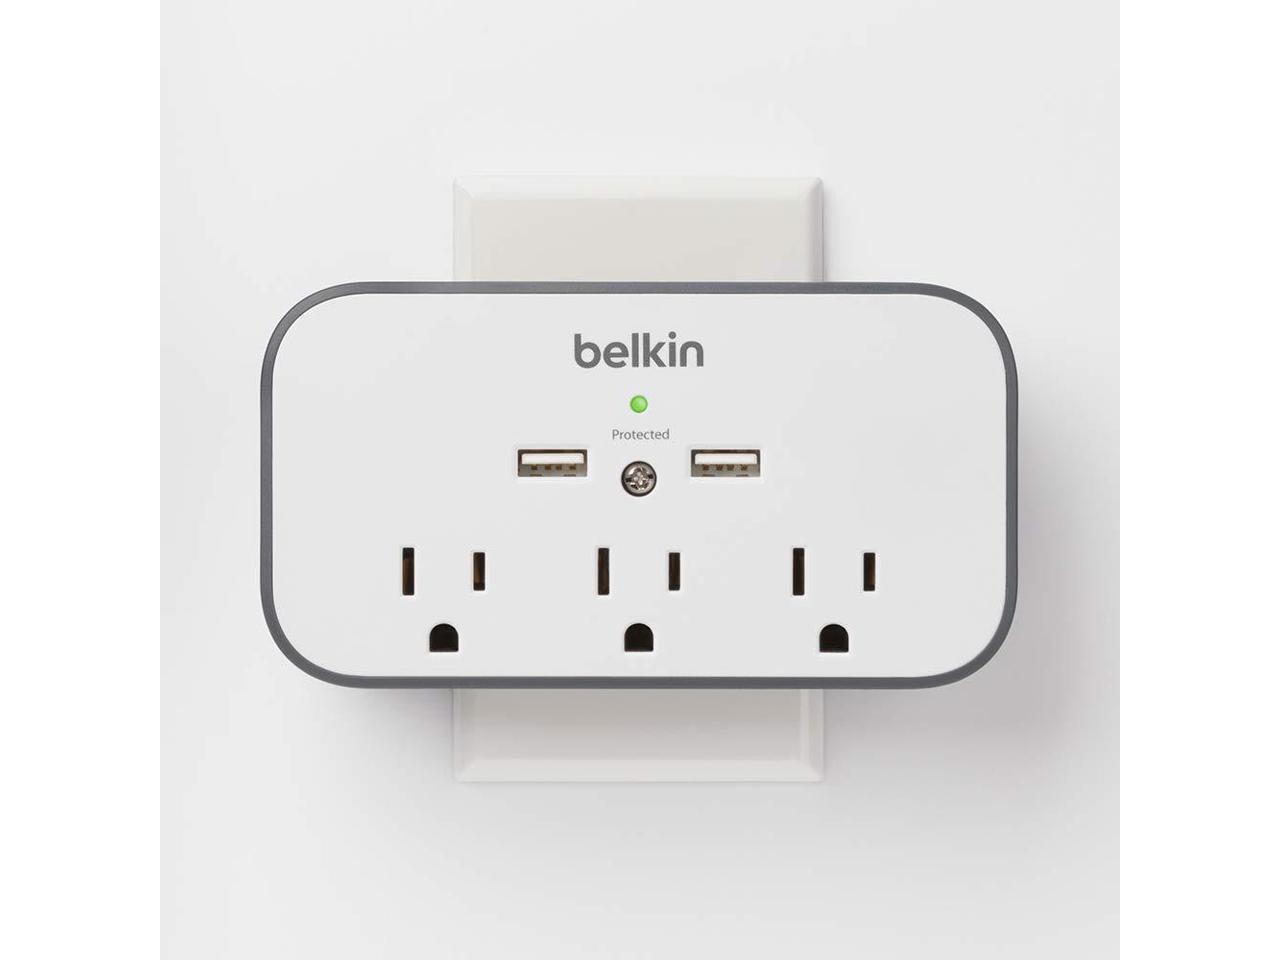 Model:BSV300ttCW Gray//White Belkin 3-Outlet Wall Mount Cradle Surge Protector with Dual USB Charging Ports 2.4 Amp Total